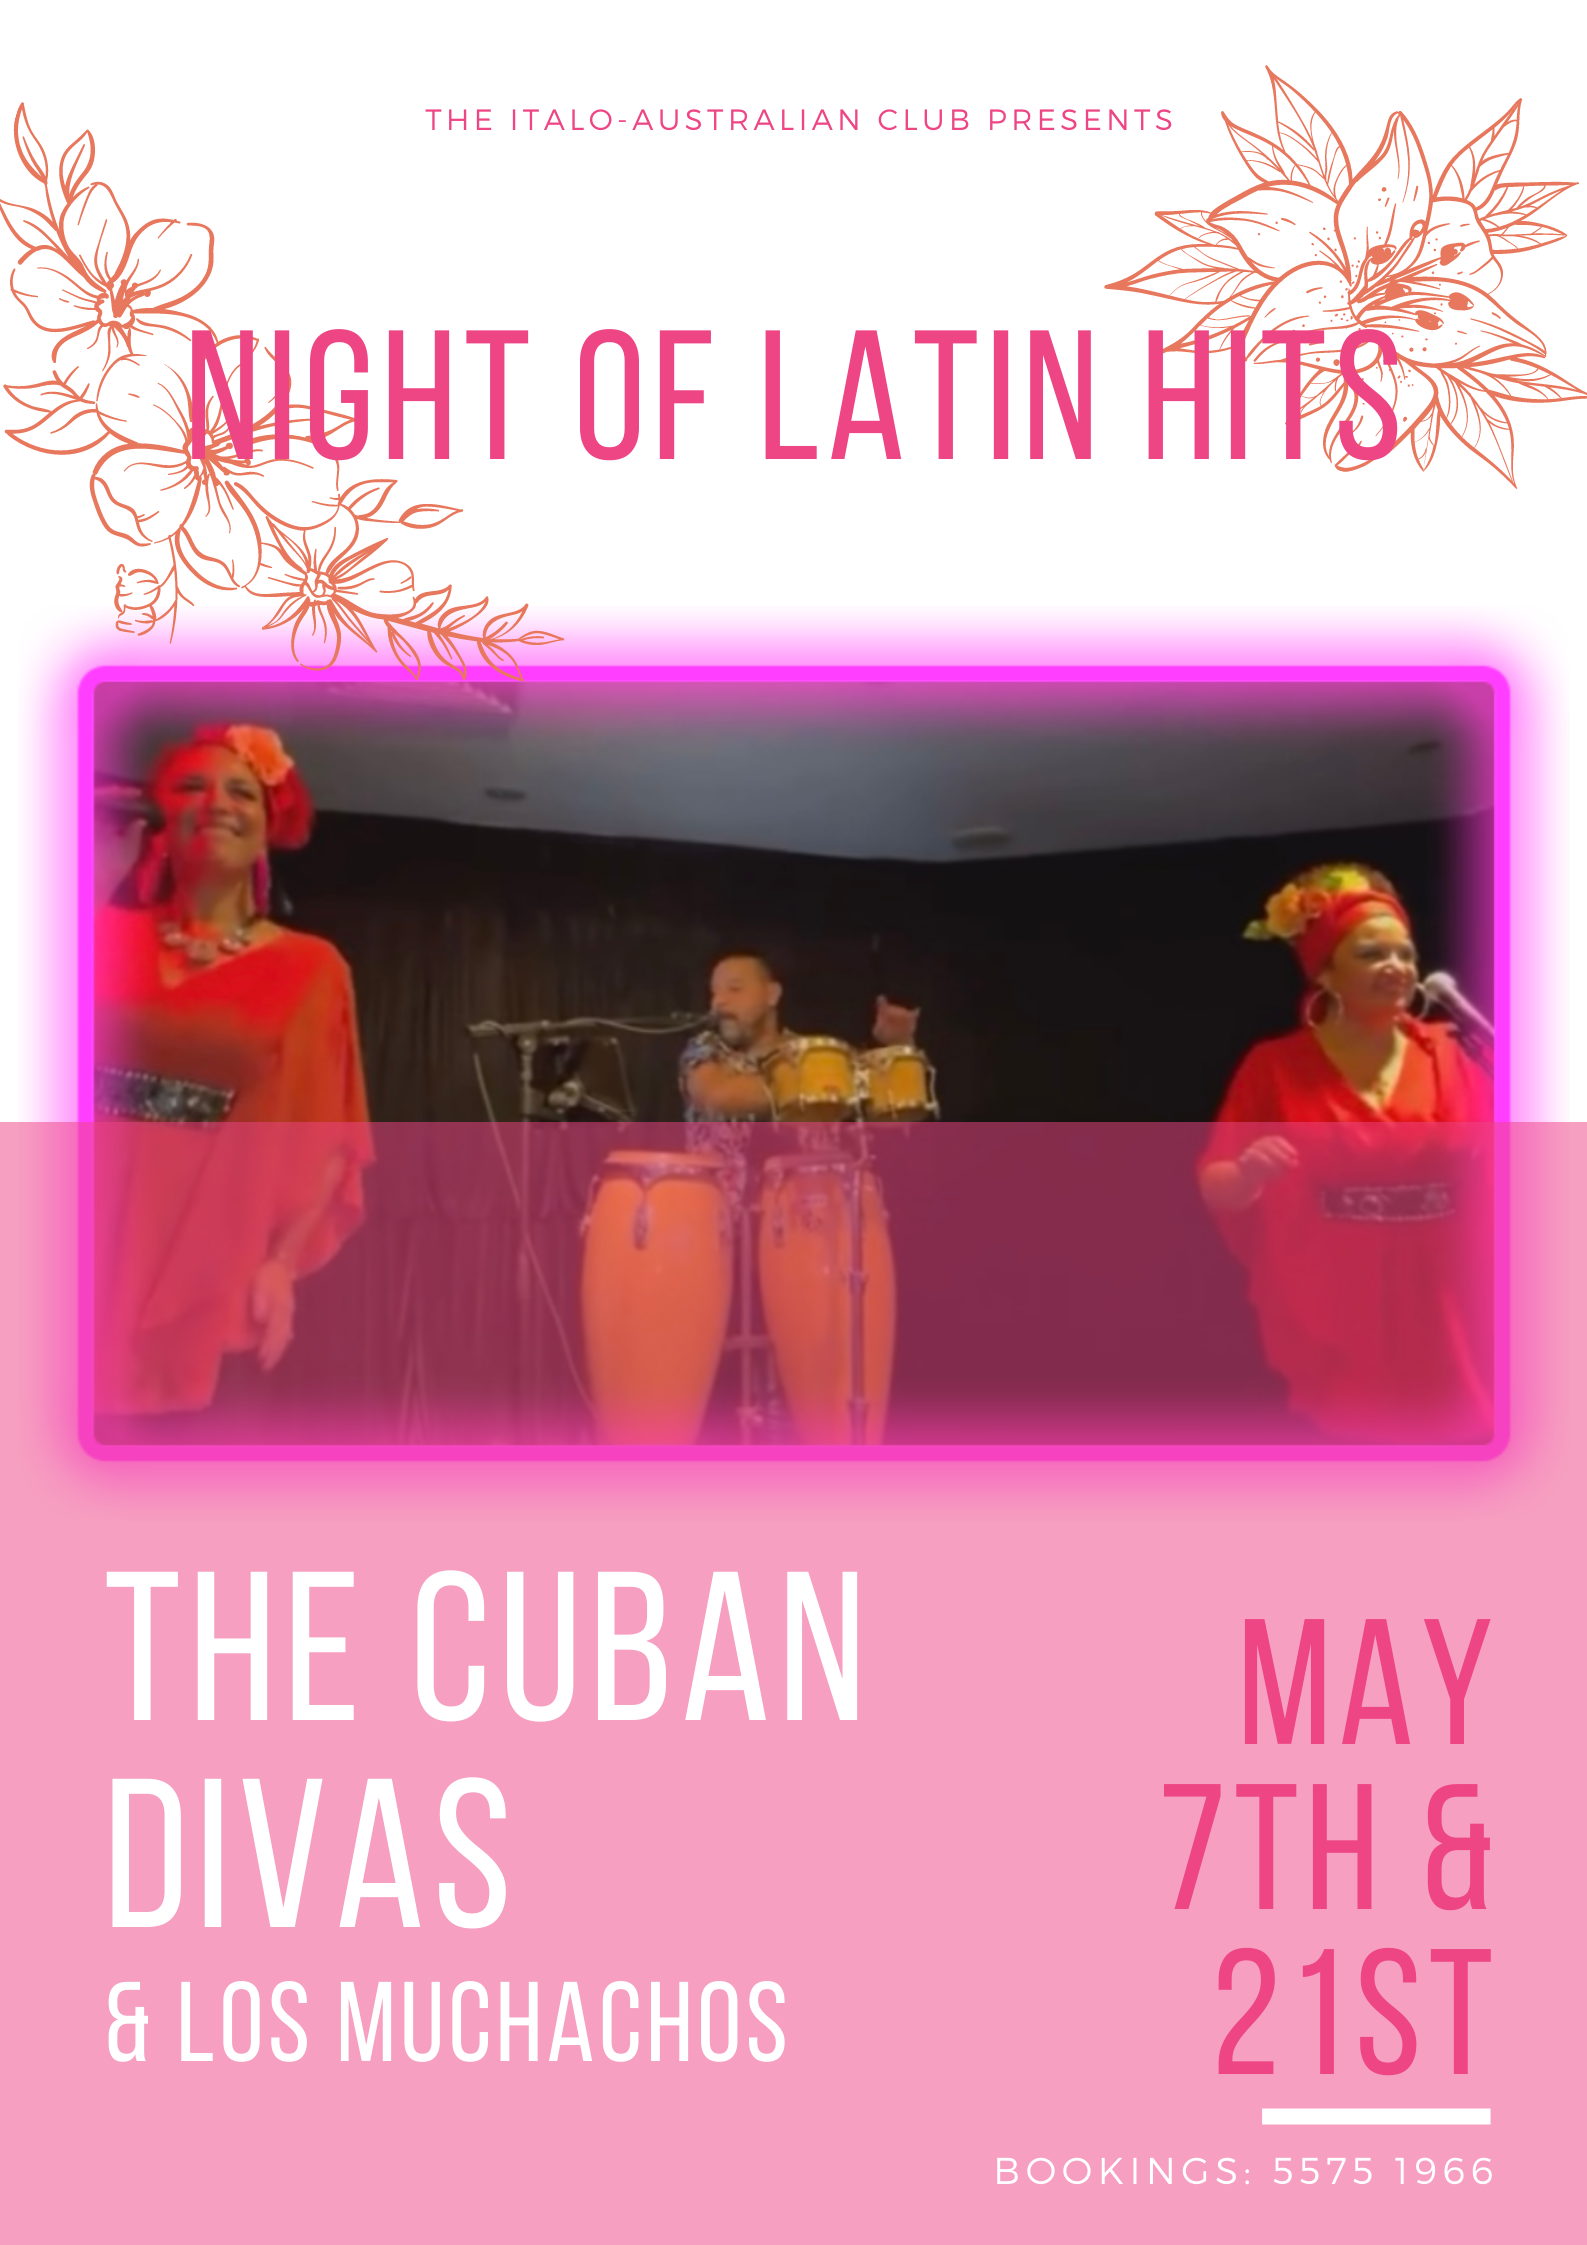 Cuban Divas performing a night of latin hits this May! Friday 7th and 21st. Booking by calling 5575 1966